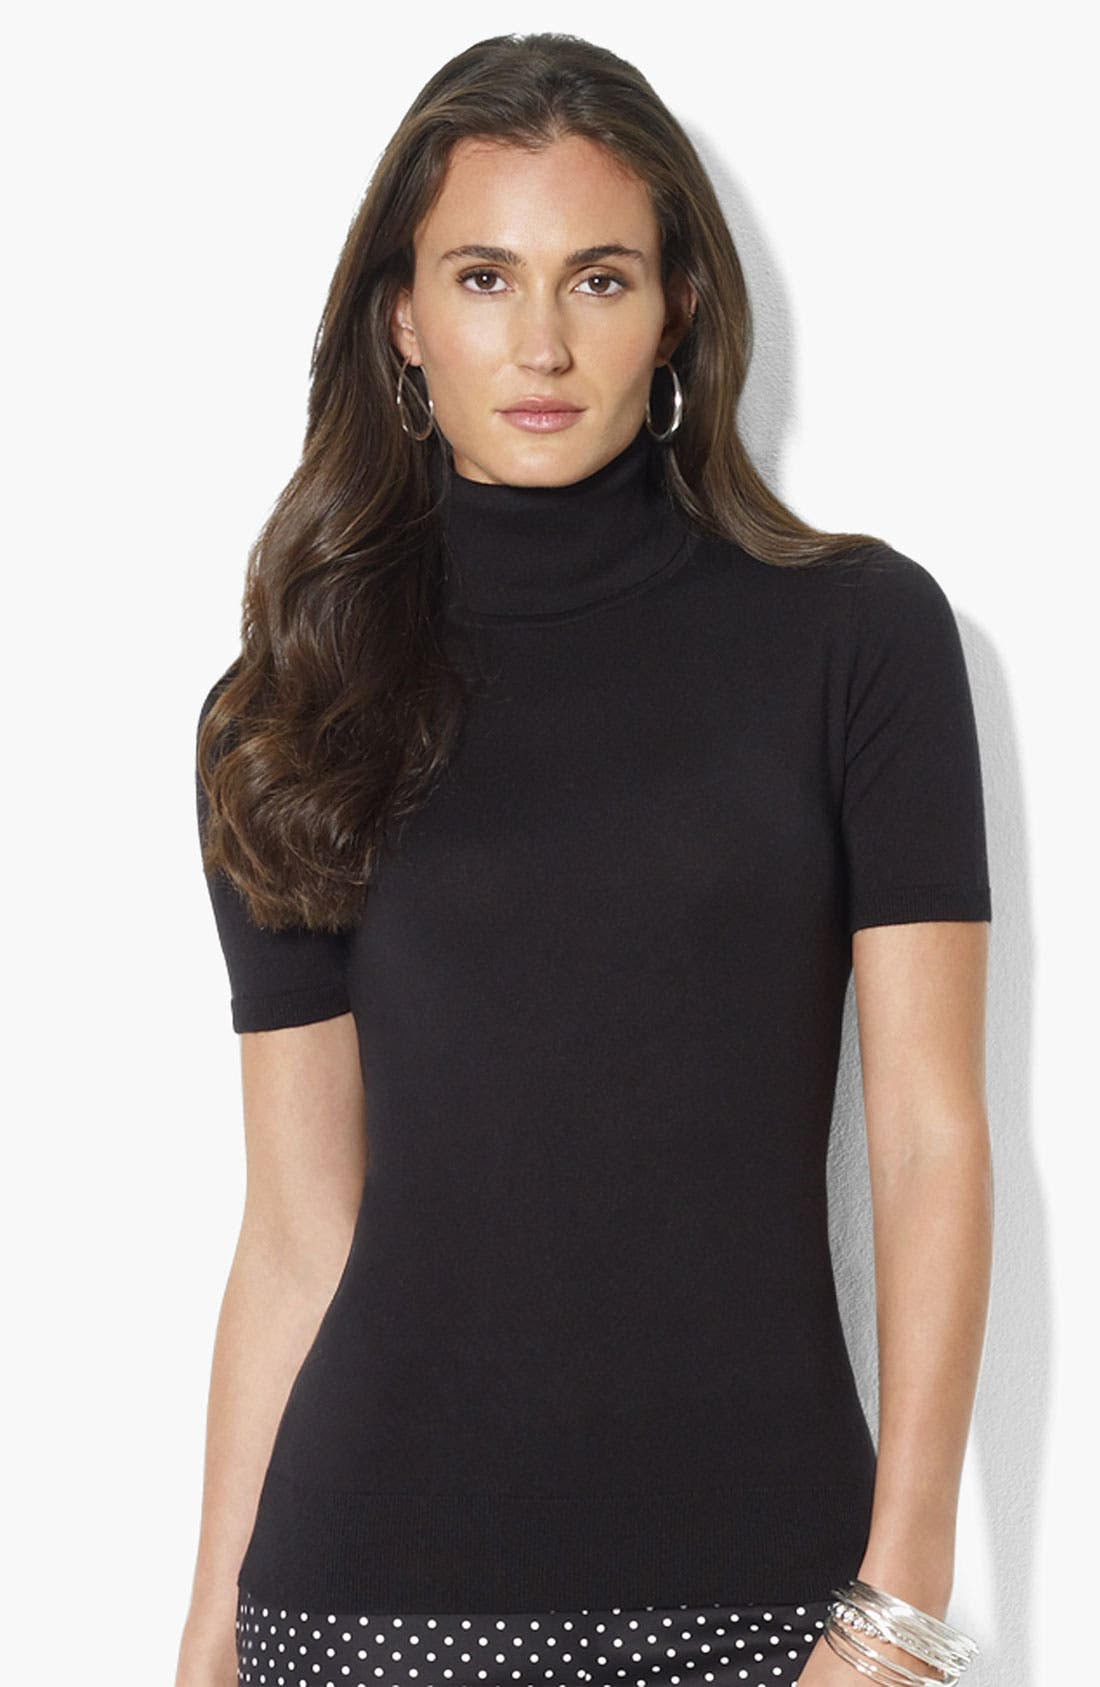 Alternate Image 1 Selected - Lauren Ralph Lauren Short Sleeve Turtleneck Top (Petite) (Online Only)